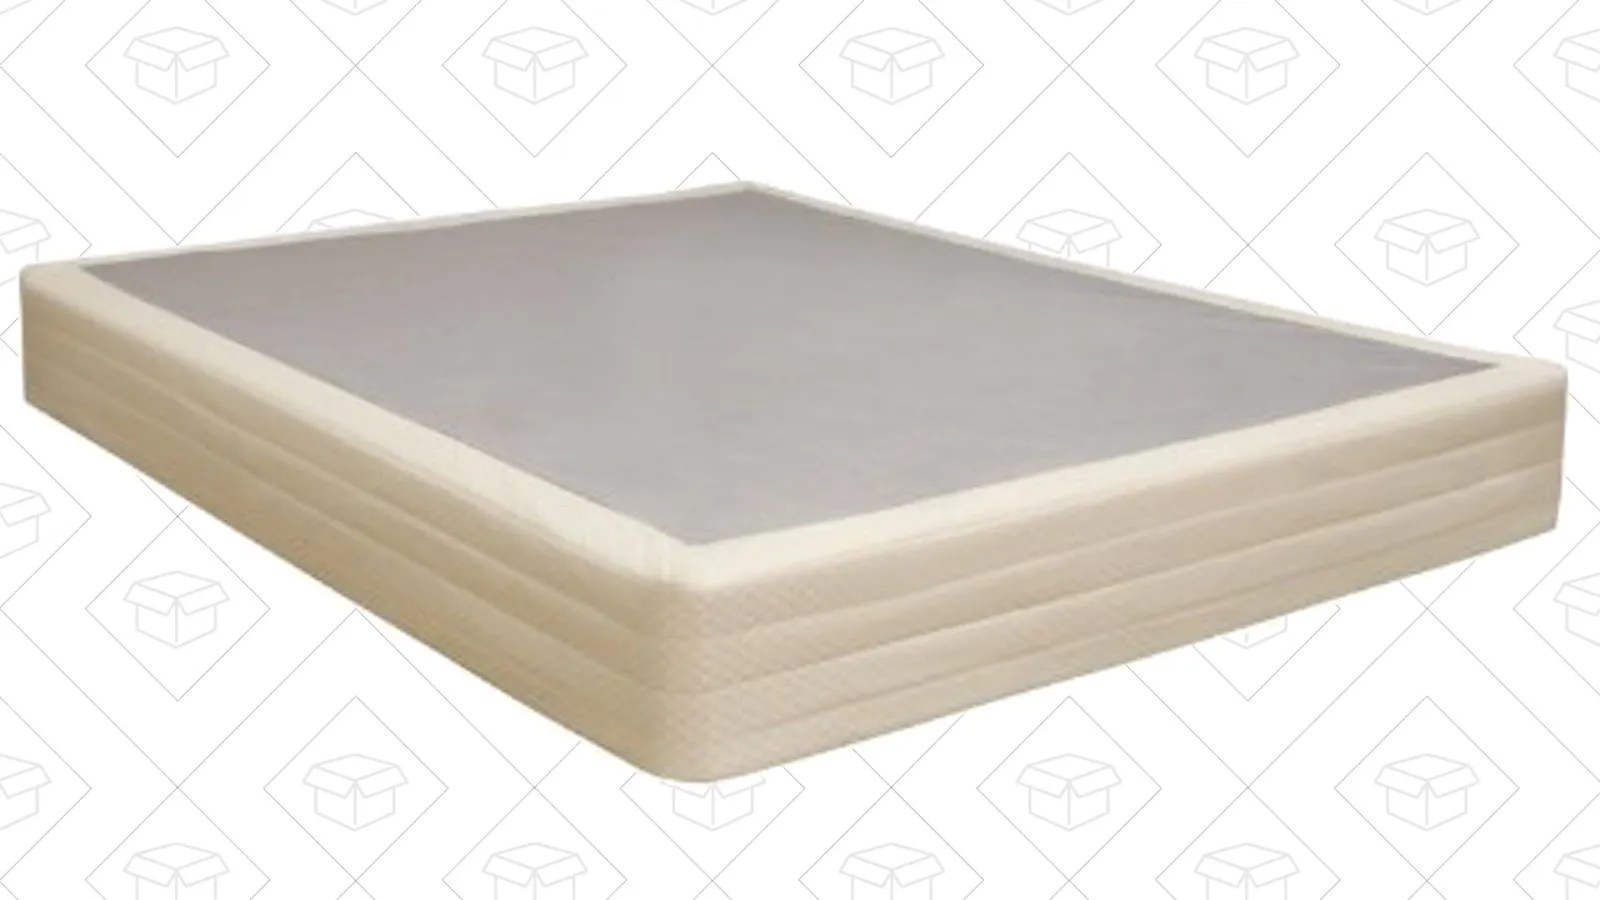 Box Spring Which Box Spring Should I Buy For My Casper According To Casper